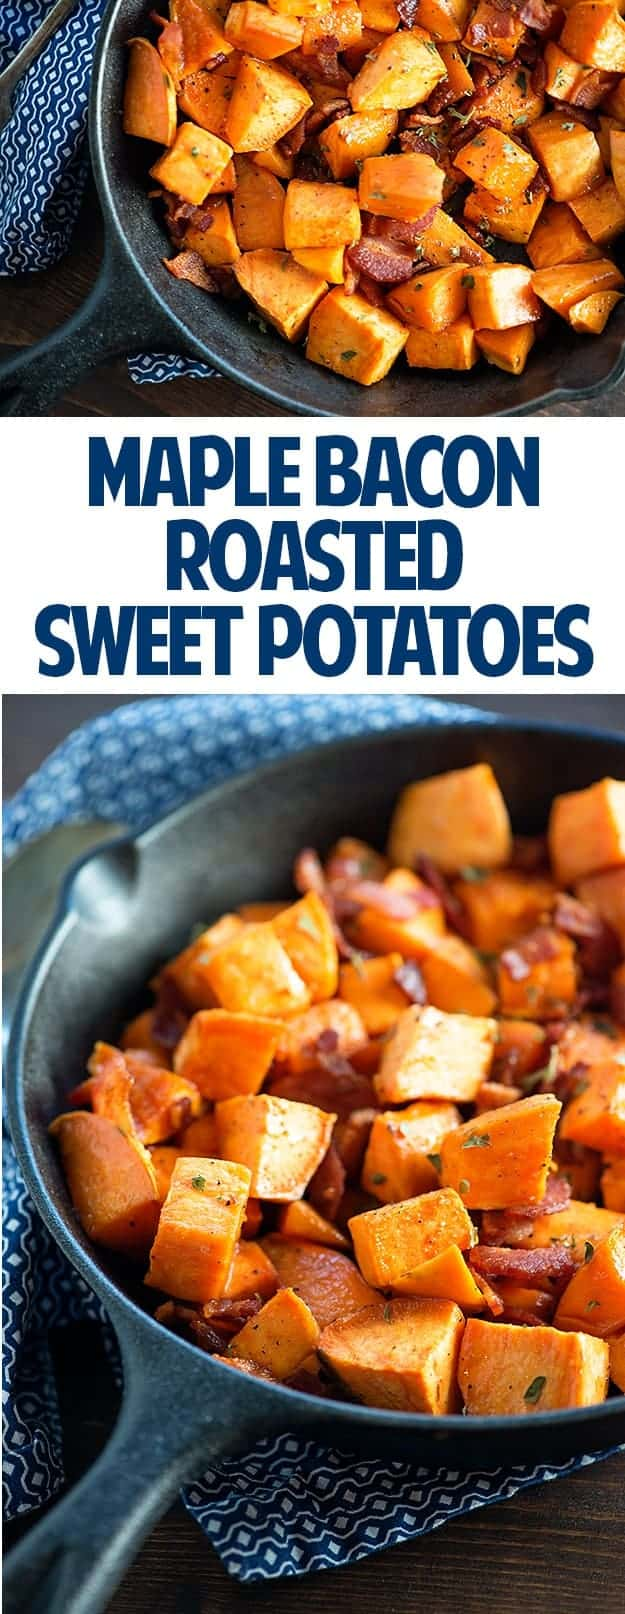 Maple Bacon Roasted Sweet Potatoes - ready in just 30 minutes and the perfect side dish for any family dinner. Even my kids like these!